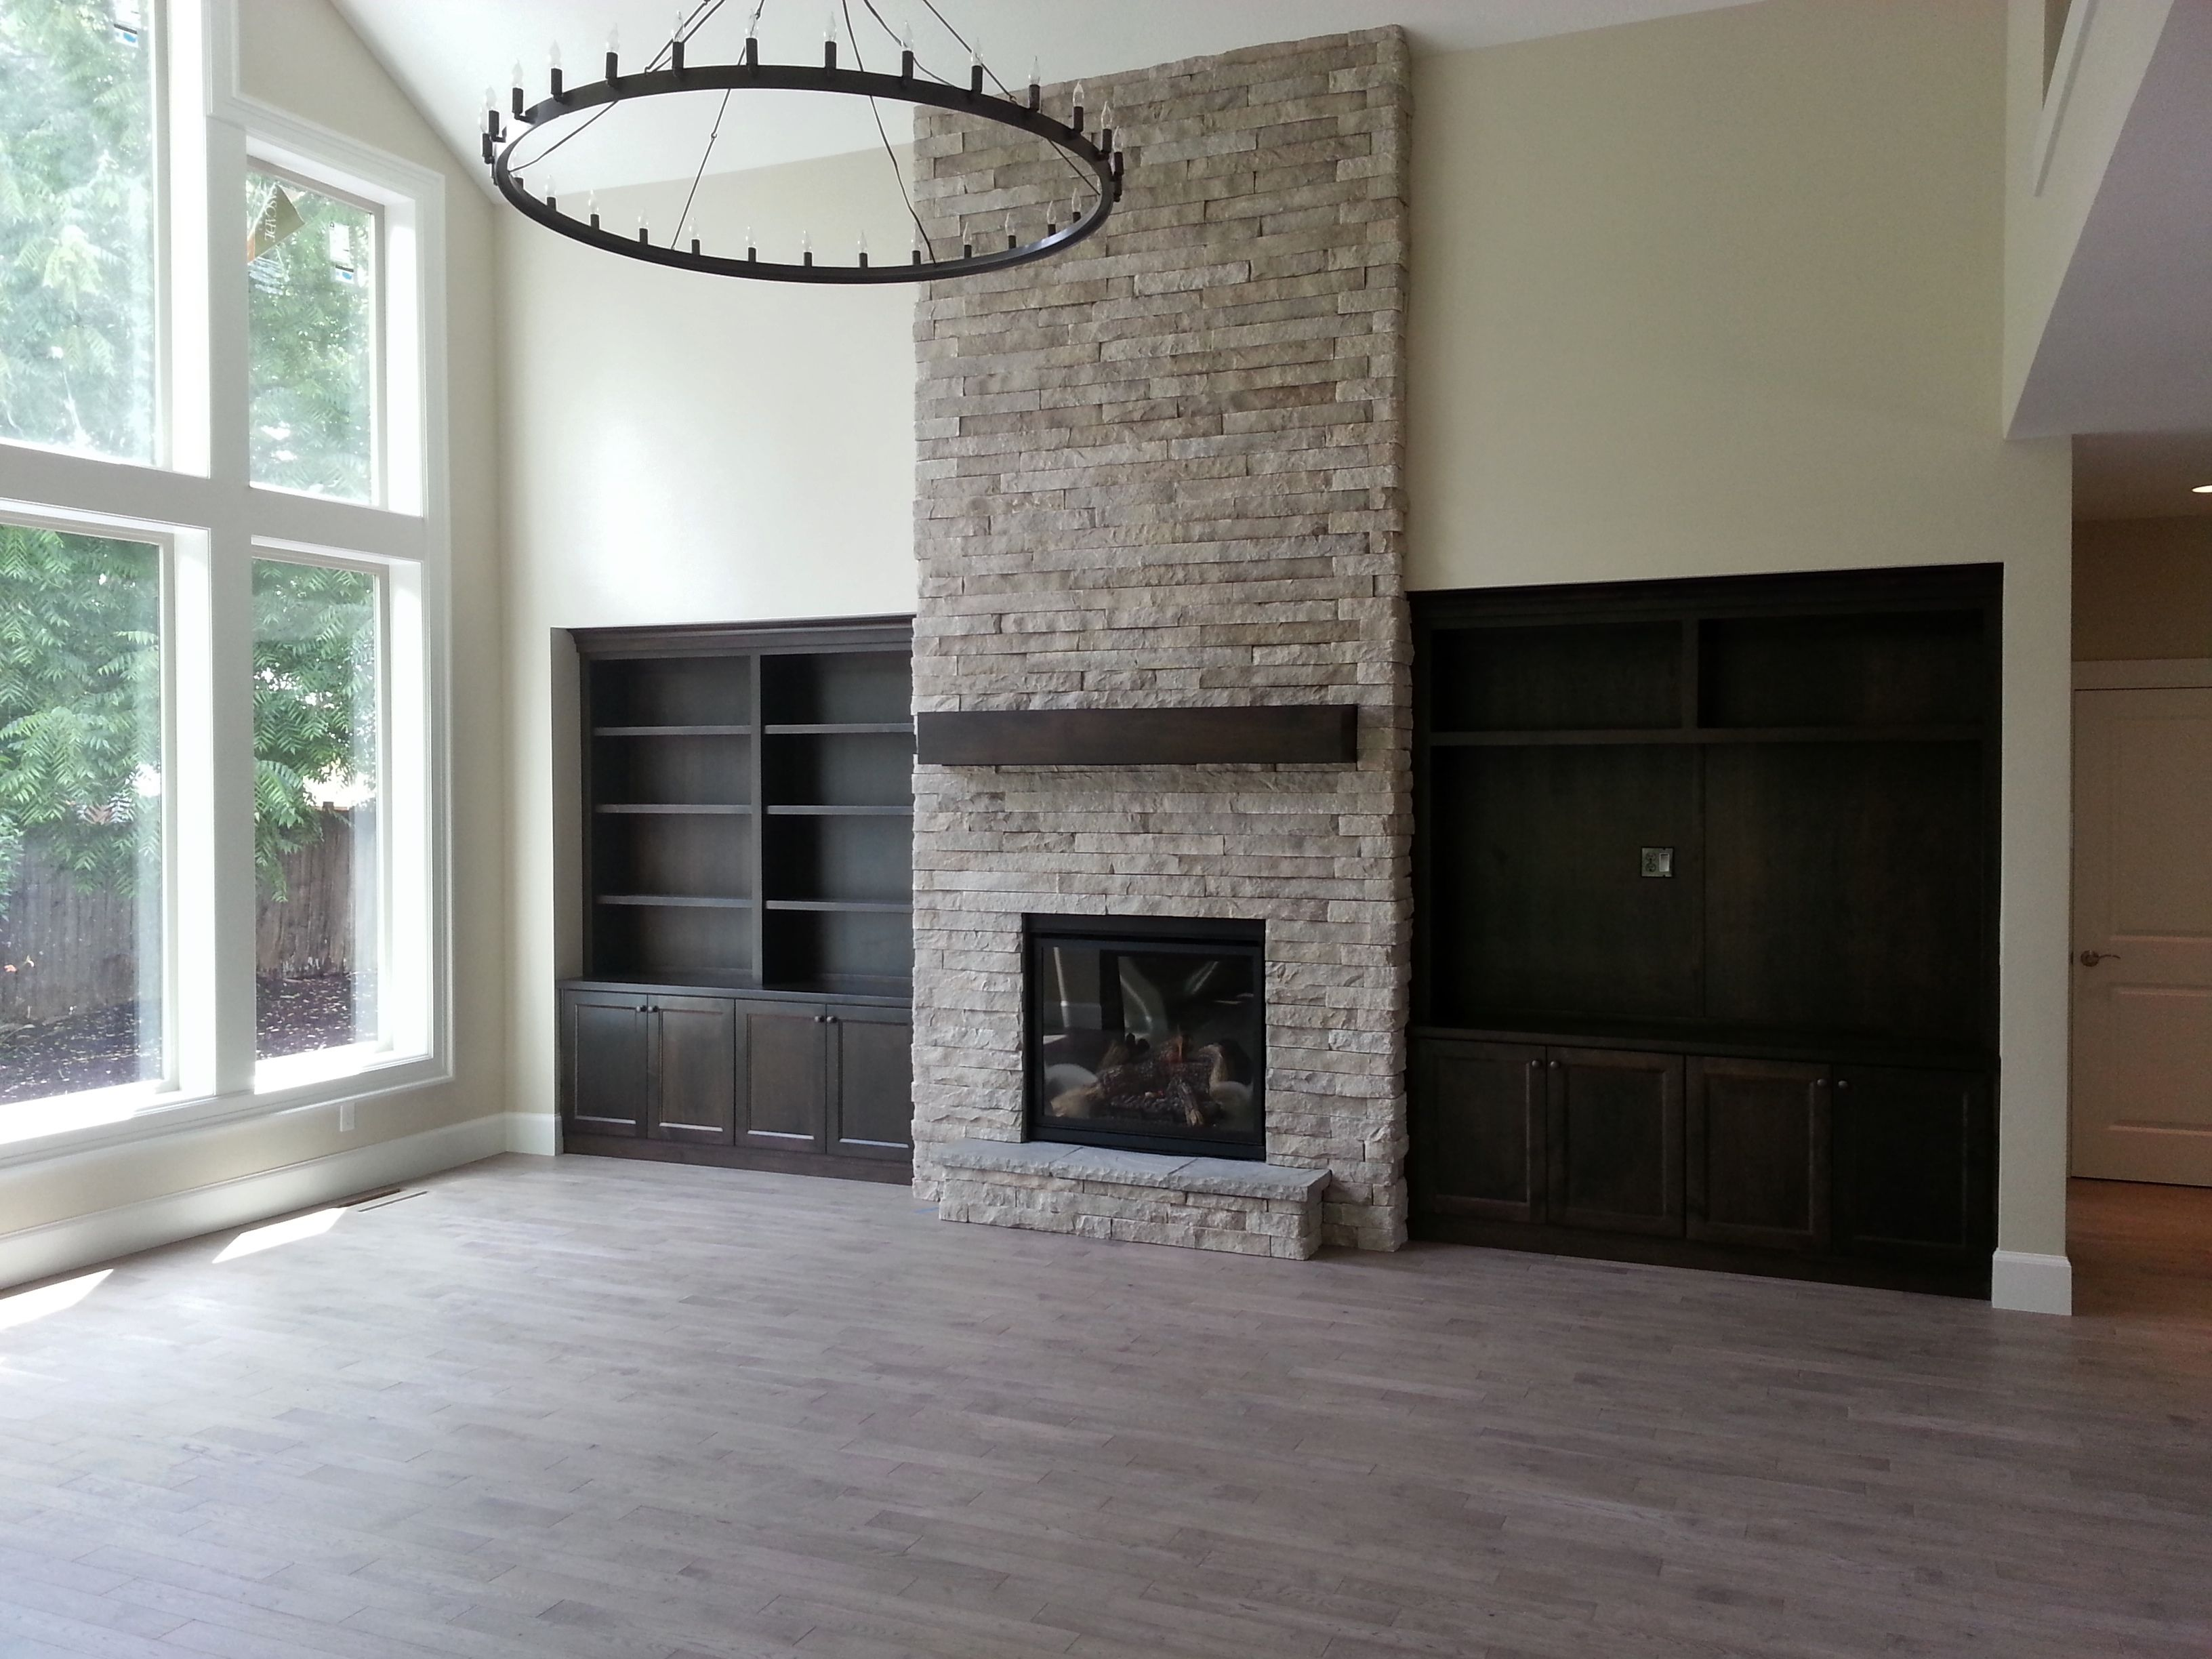 Fireplace Indoor Fireplace Stone To Ceiling Gas